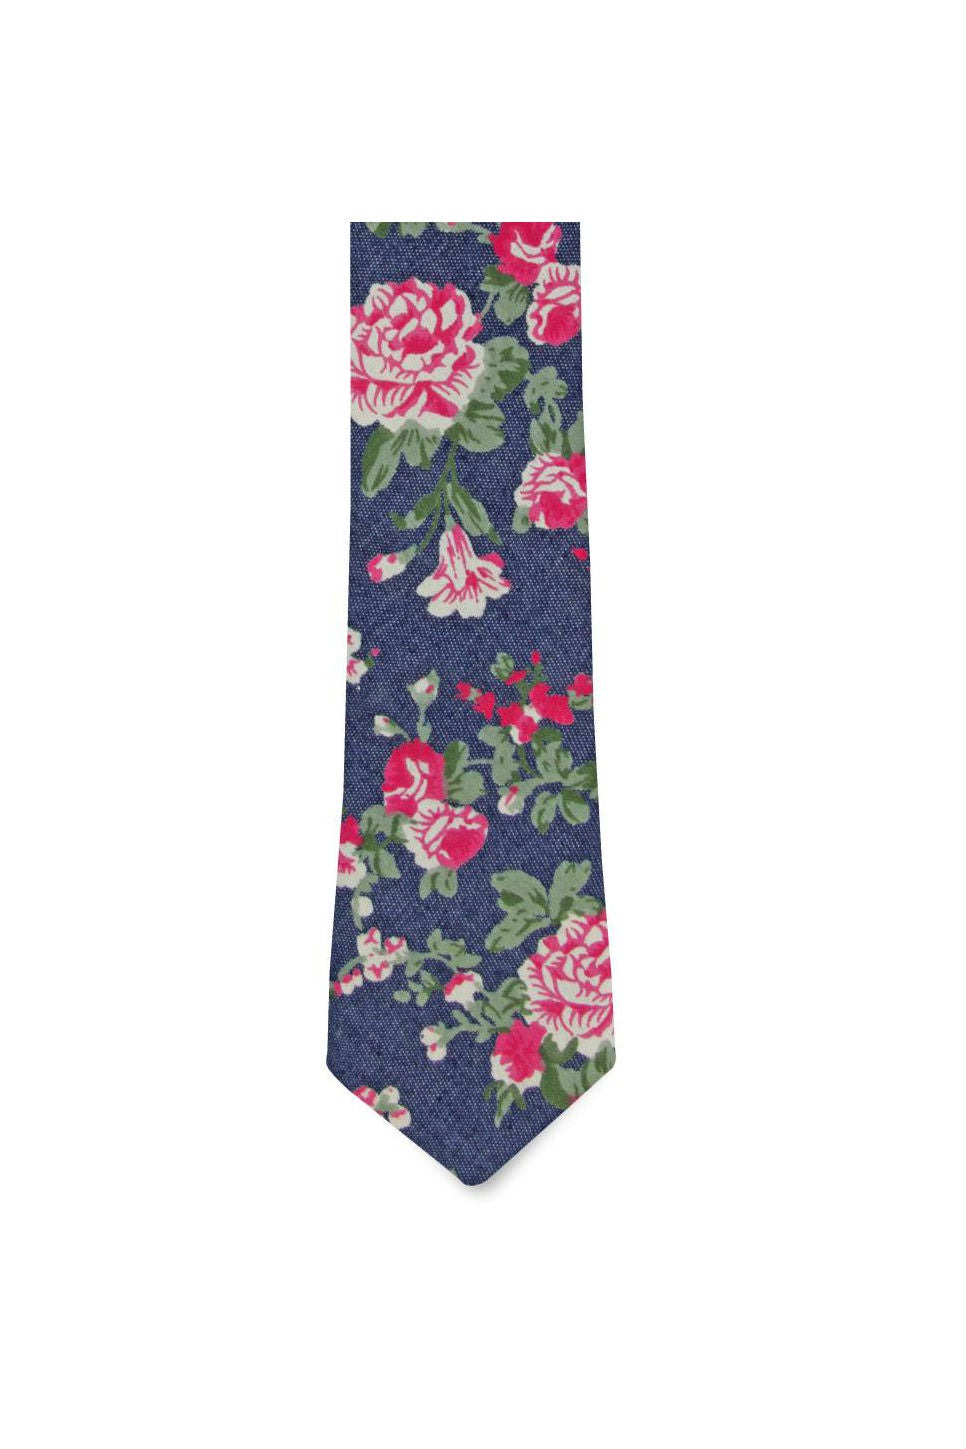 THE CLARA TIE Blue Floral